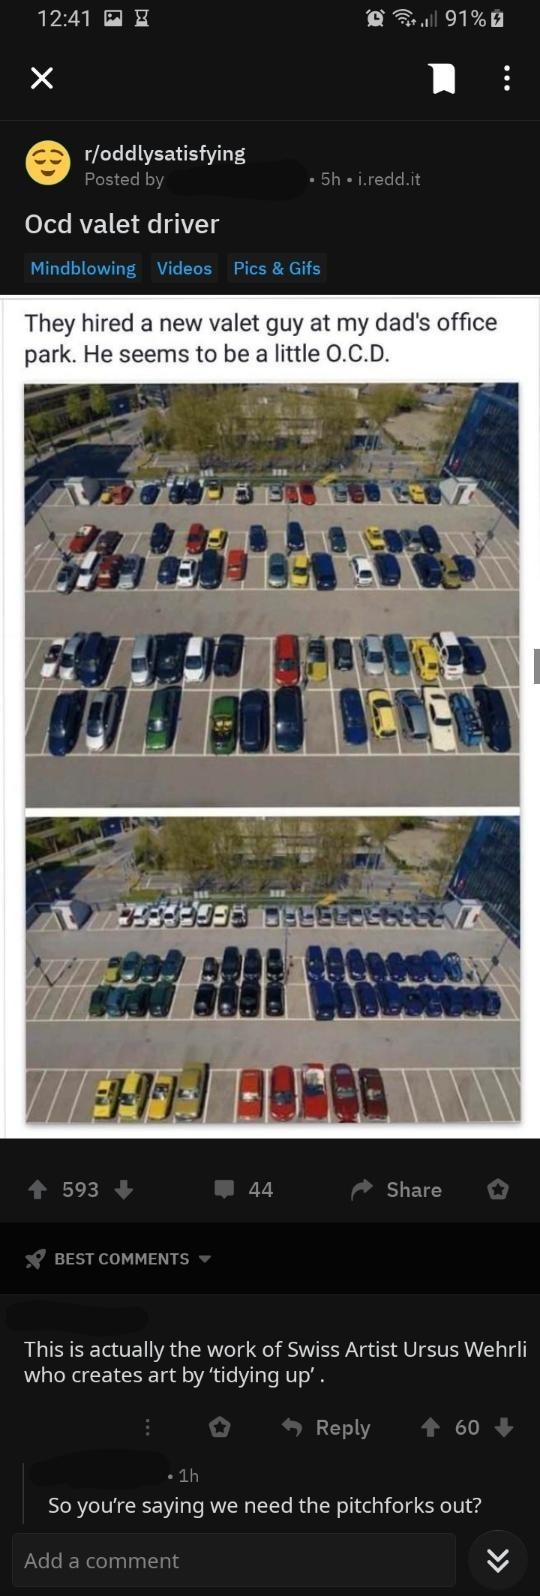 Architecture - 91% 12:41 X r/oddlysatisfying 5h i.redd.it Posted by Ocd valet driver Mindblowing Videos Pics & Gifs They hired a new valet guy at my dad's office park. He seems to be a little O.C.D. t 593 Share 44 BEST COMMENTS This is actually the work of Swiss Artist Ursus Wehrli who creates art by 'tidying up' Reply 60 1h So you're saying we need the pitchforks out? Add a comment